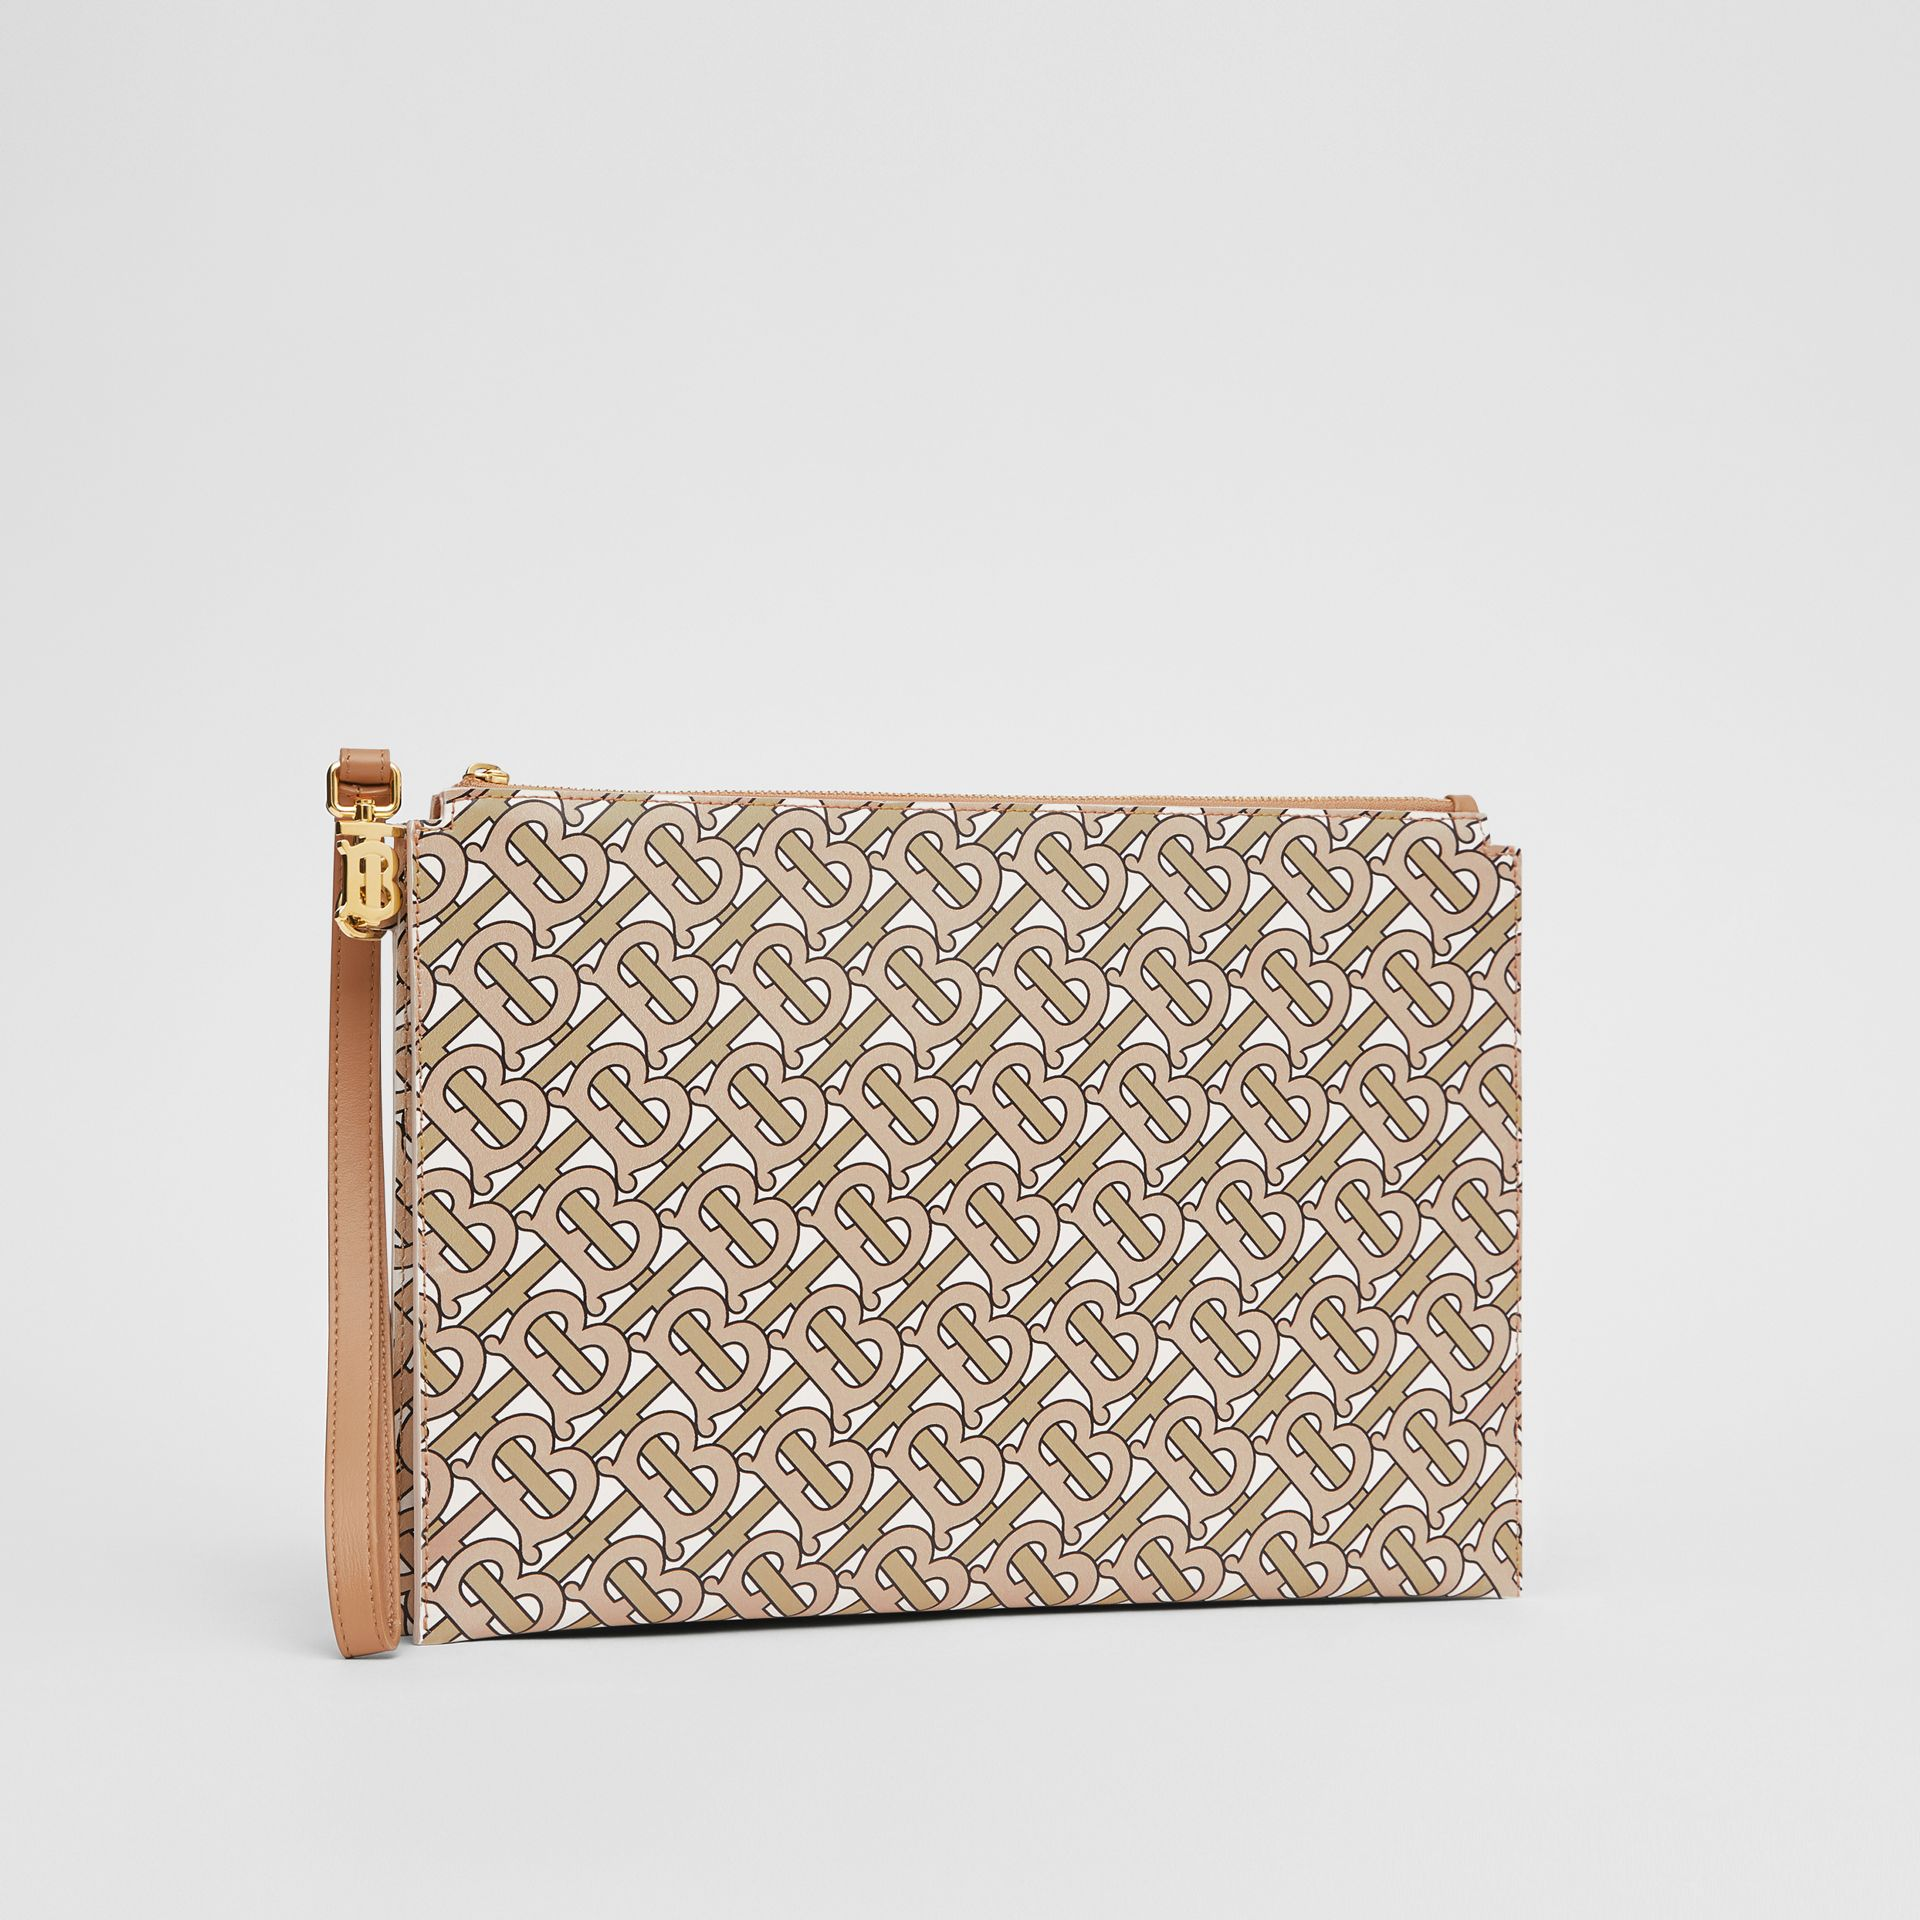 Monogram Print Leather Pouch in Beige - Women | Burberry - gallery image 5